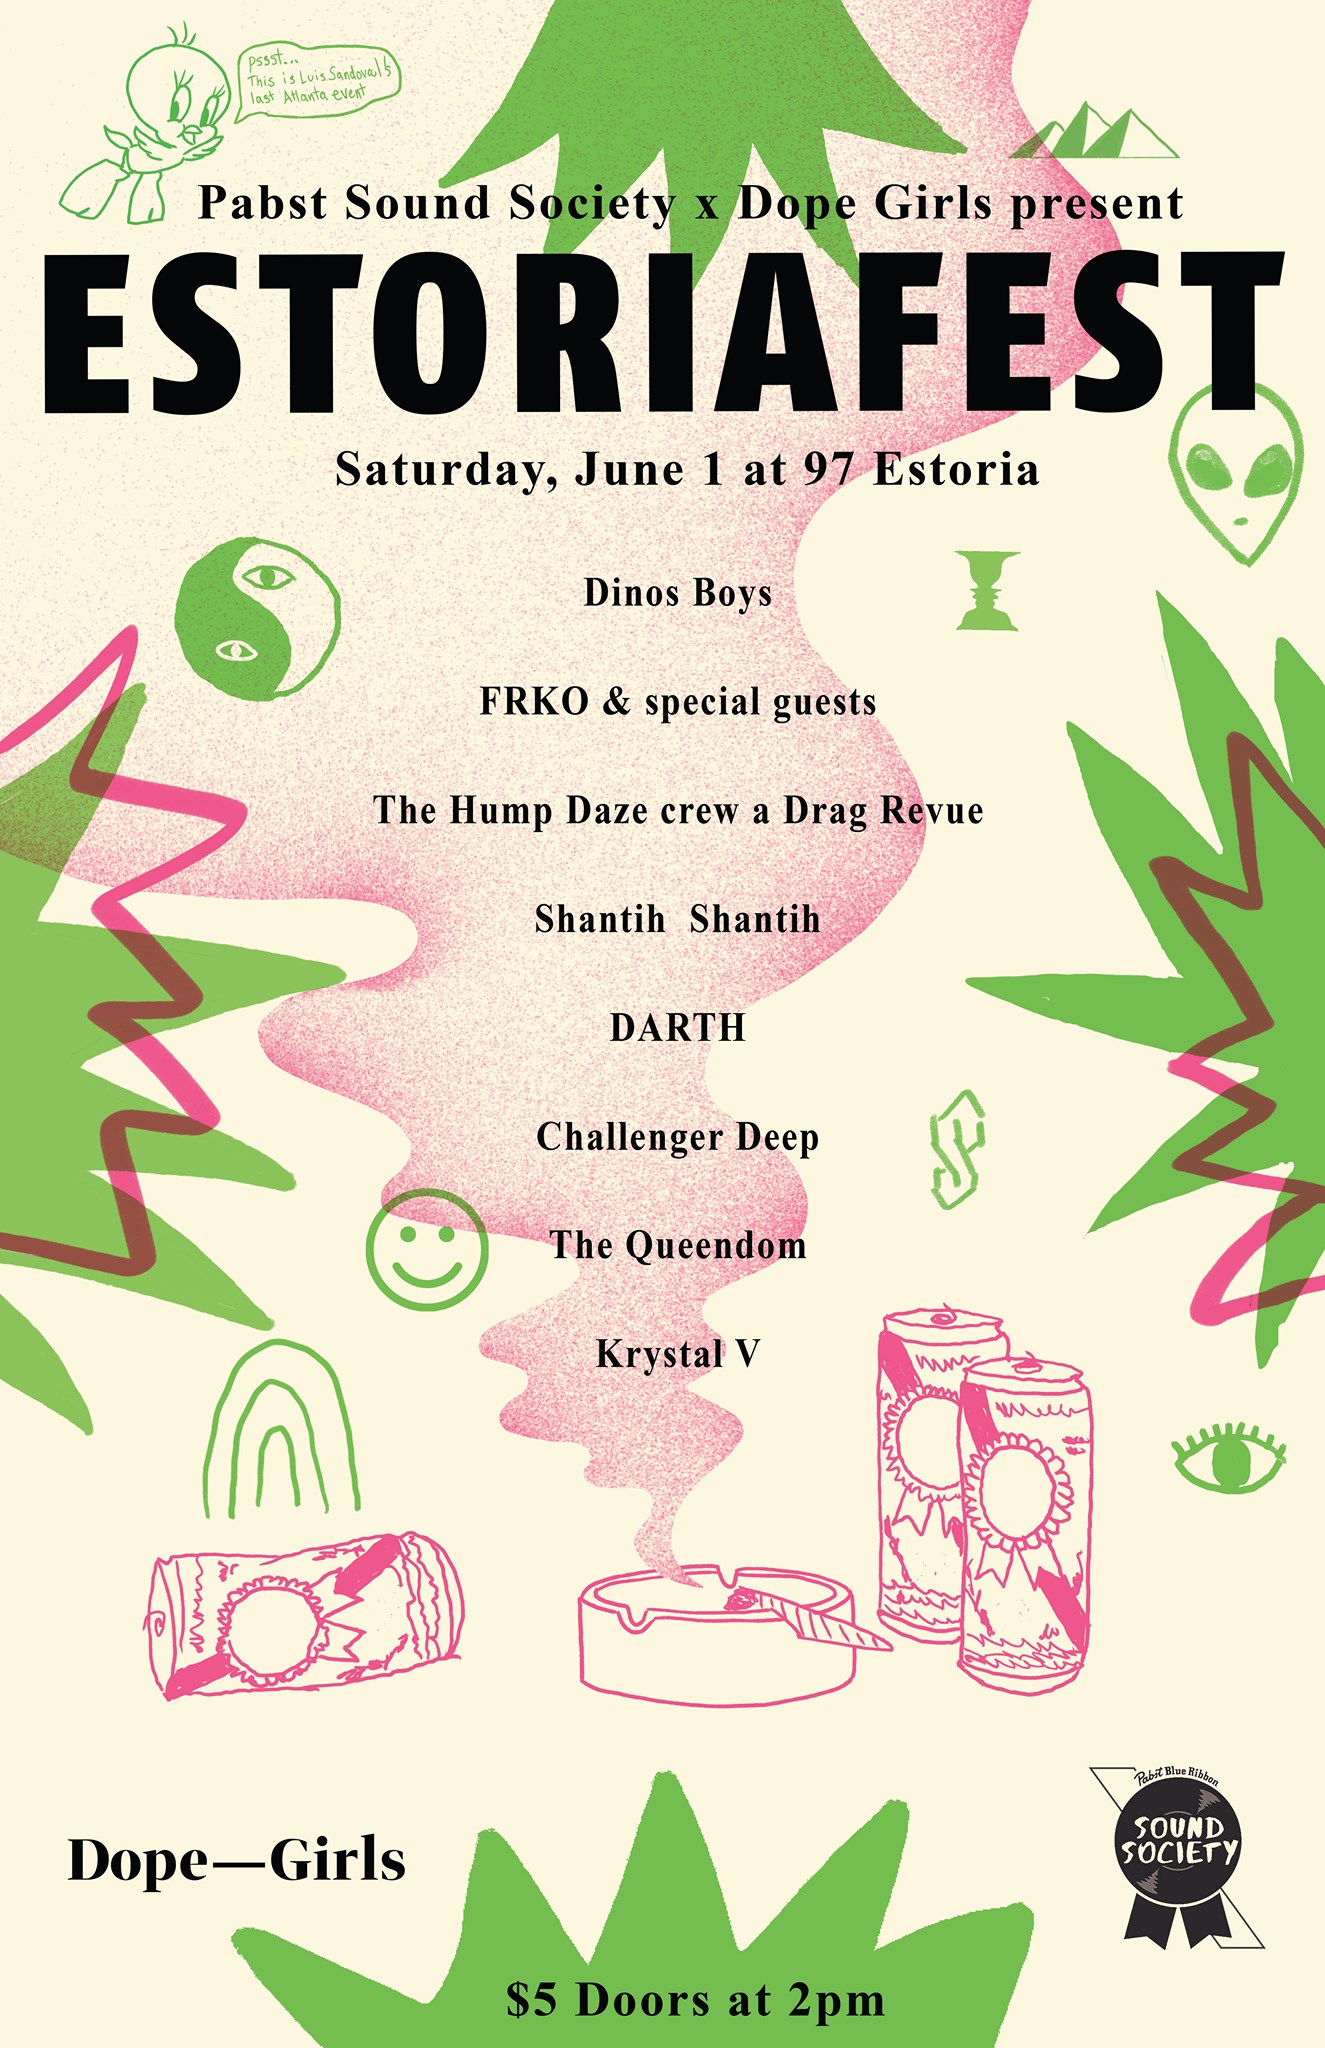 Estoriafest is back this weekend, this time with Dope Girls